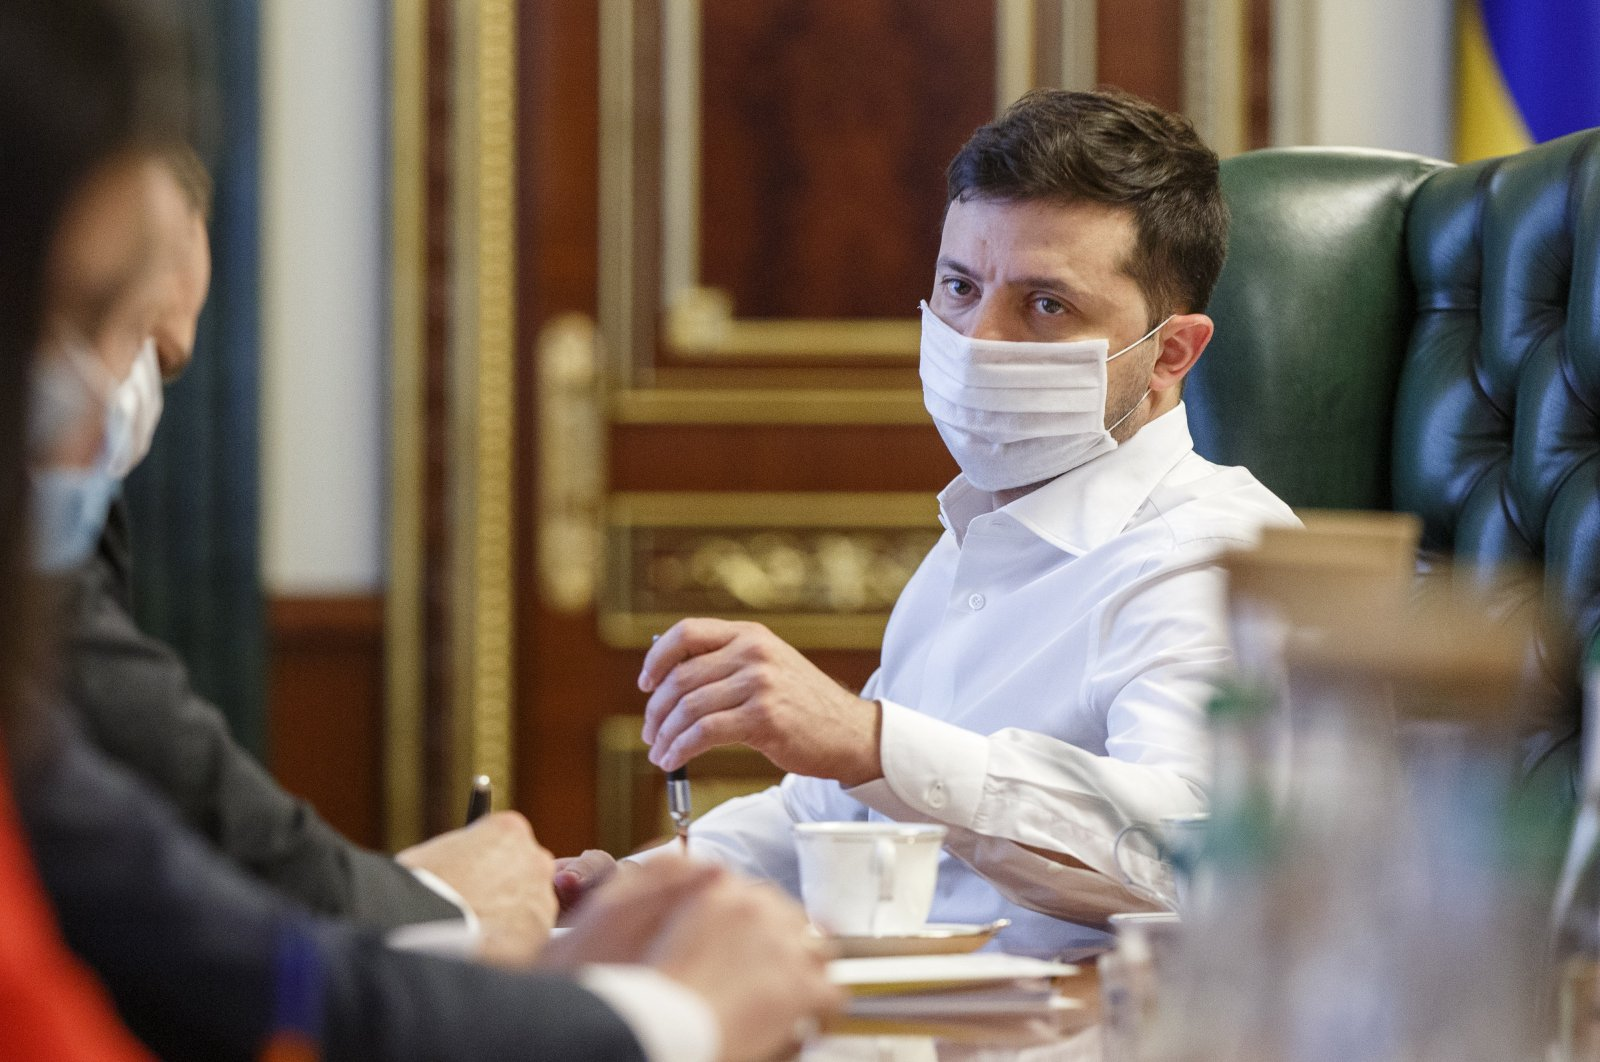 Ukrainian President Volodymyr Zelenskiy in a face mask to protect against coronavirus, discusses the COVID-19 situation in the country with officials in his office in Kyiv, Ukraine on April 22, 2020. (AP Photo)